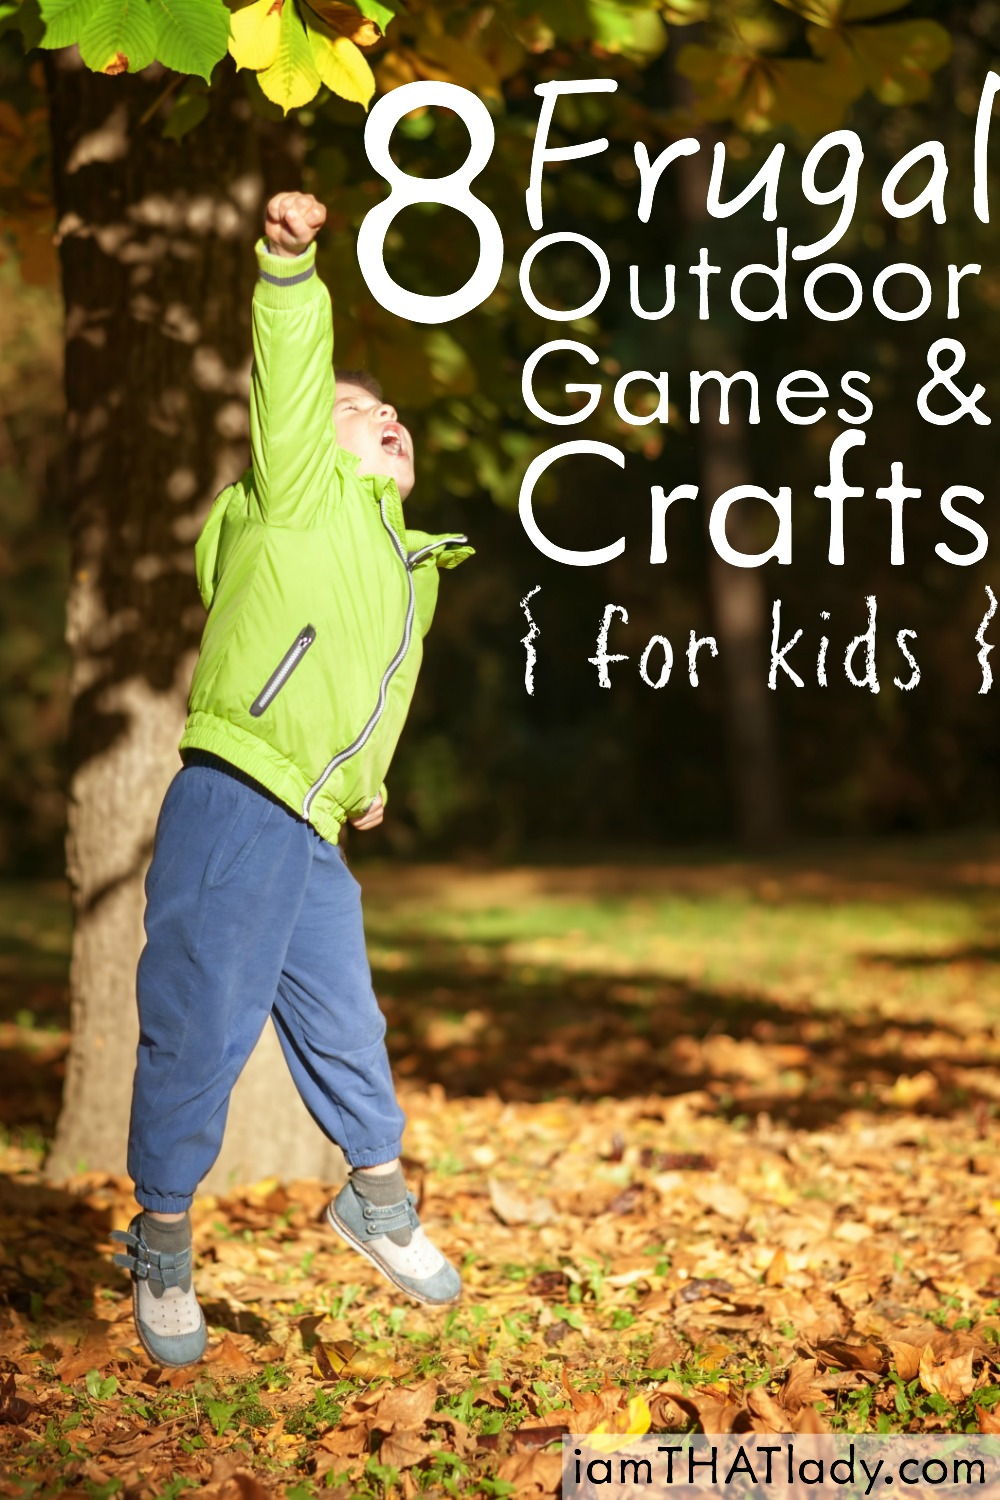 Looking for frugal ways to have fun with your kids outside? Check out these 8 FUN activities that you will all LOVE!